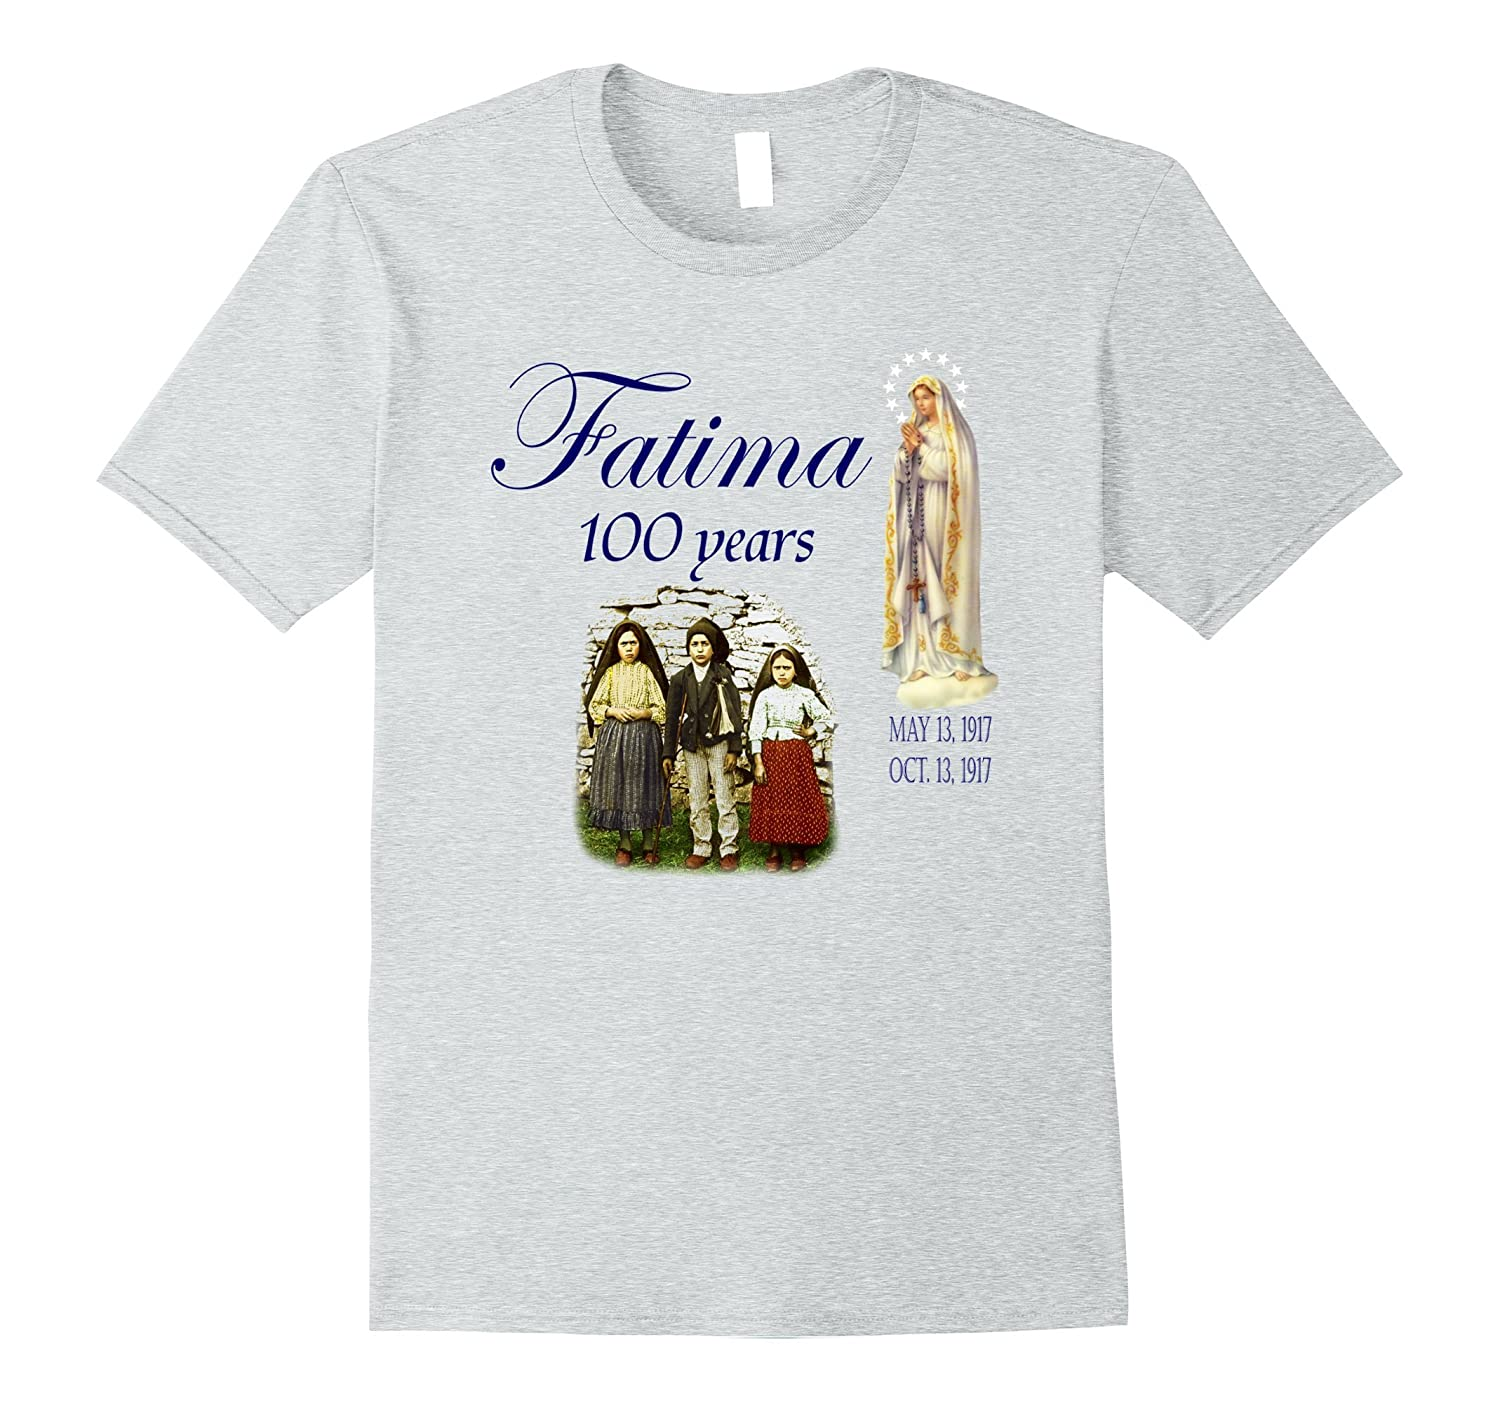 Our Lady of Fatima Anniversary Virgin Mary